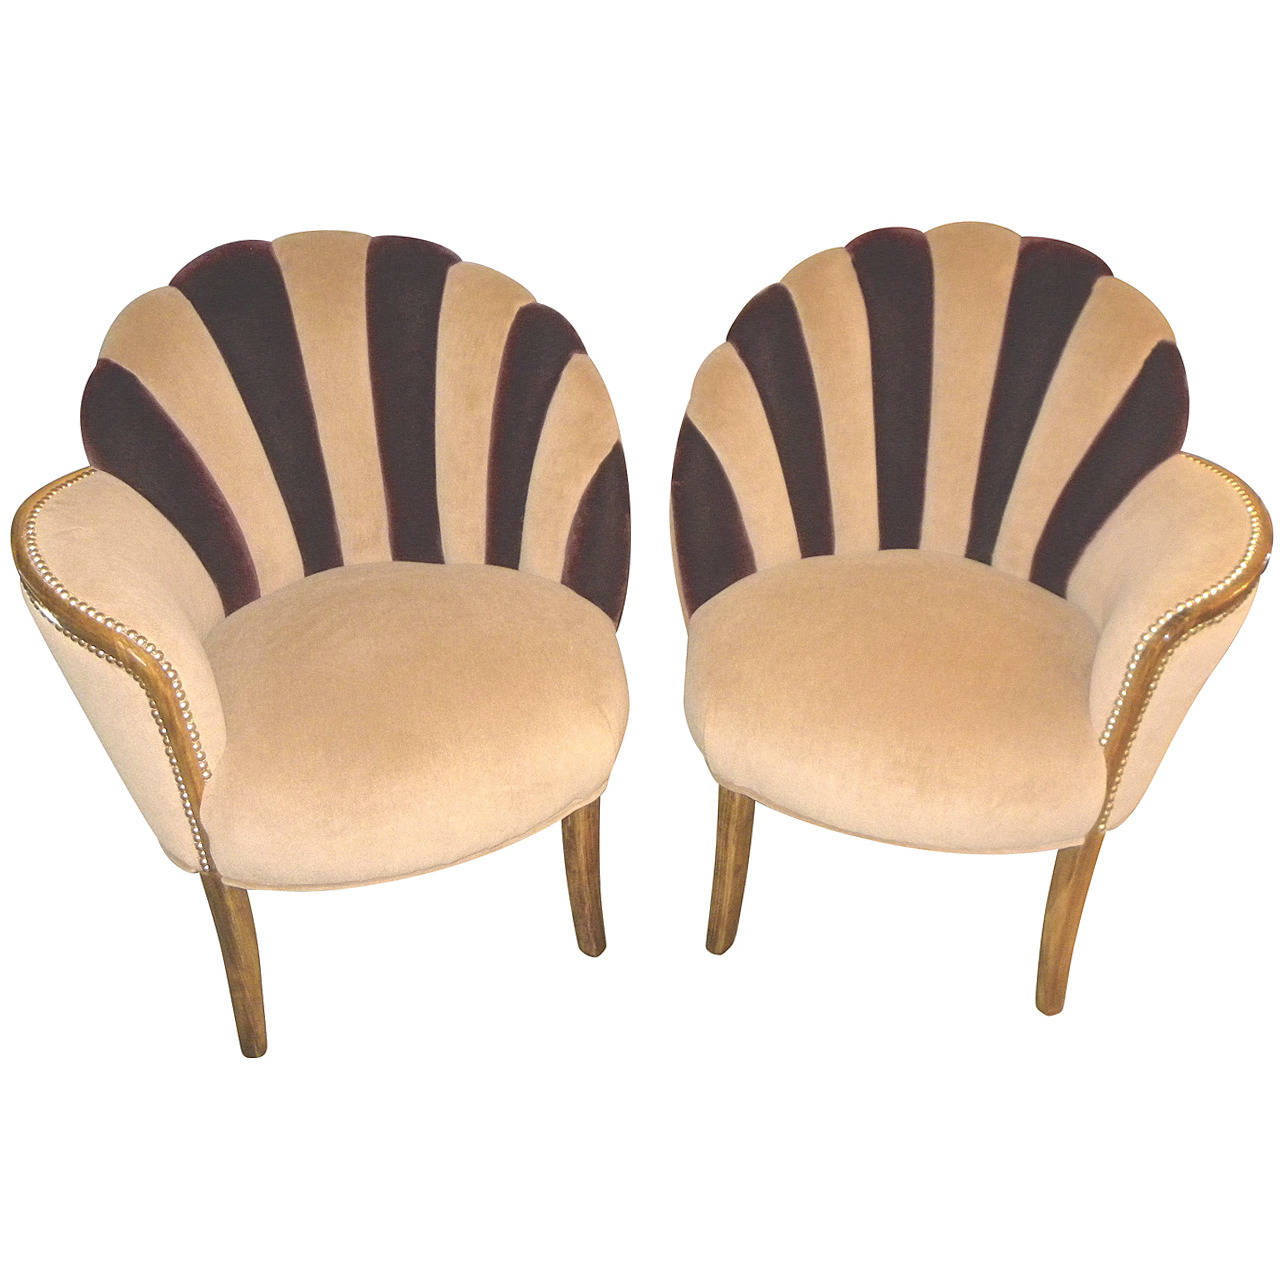 High Style Art Deco Fan Backed Side Chairs Decor